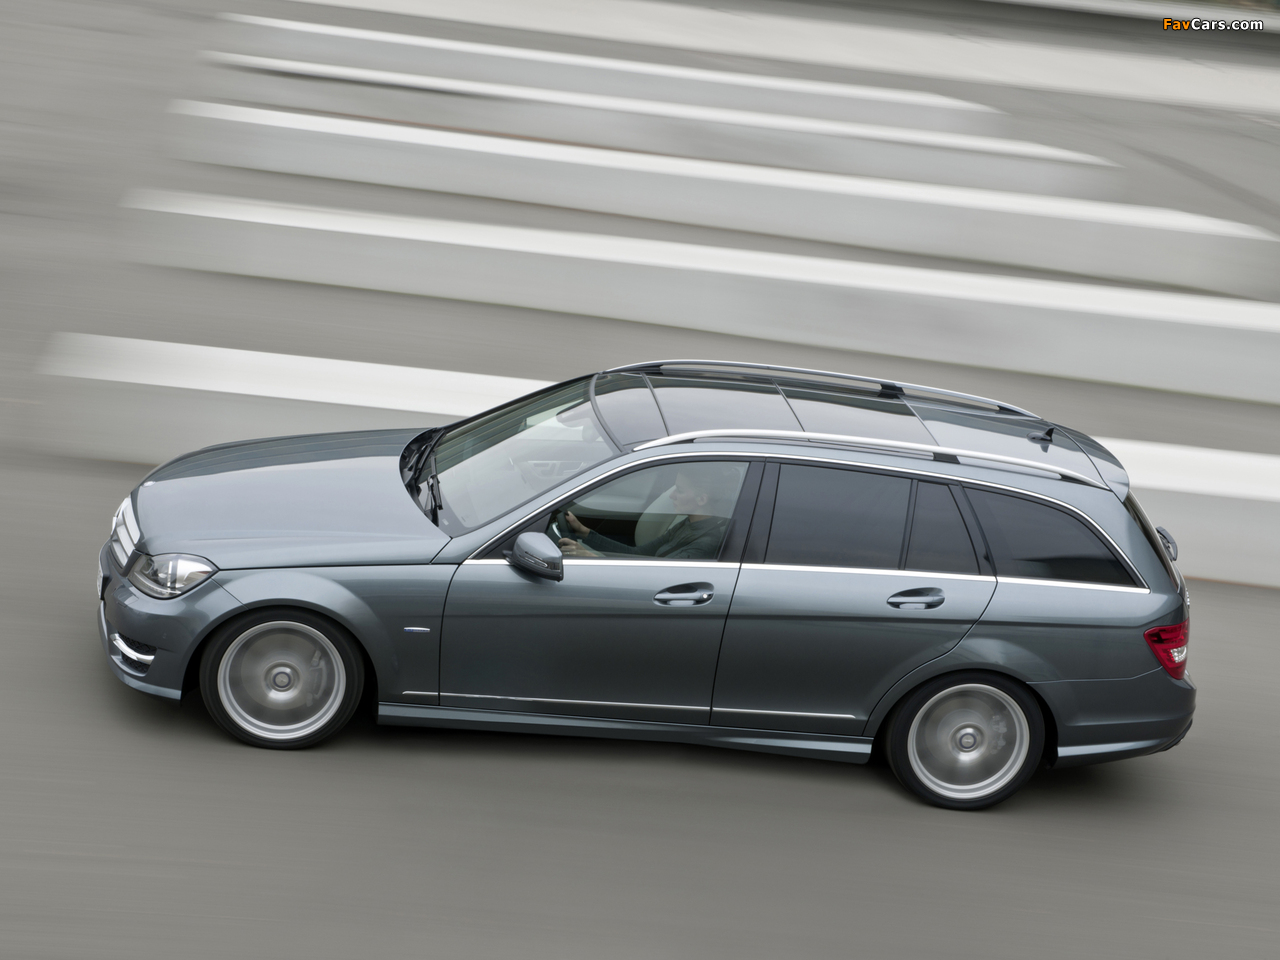 Mercedes-Benz C 350 CDI 4MATIC AMG Sports Package Estate (S204) 2011 photos (1280 x 960)